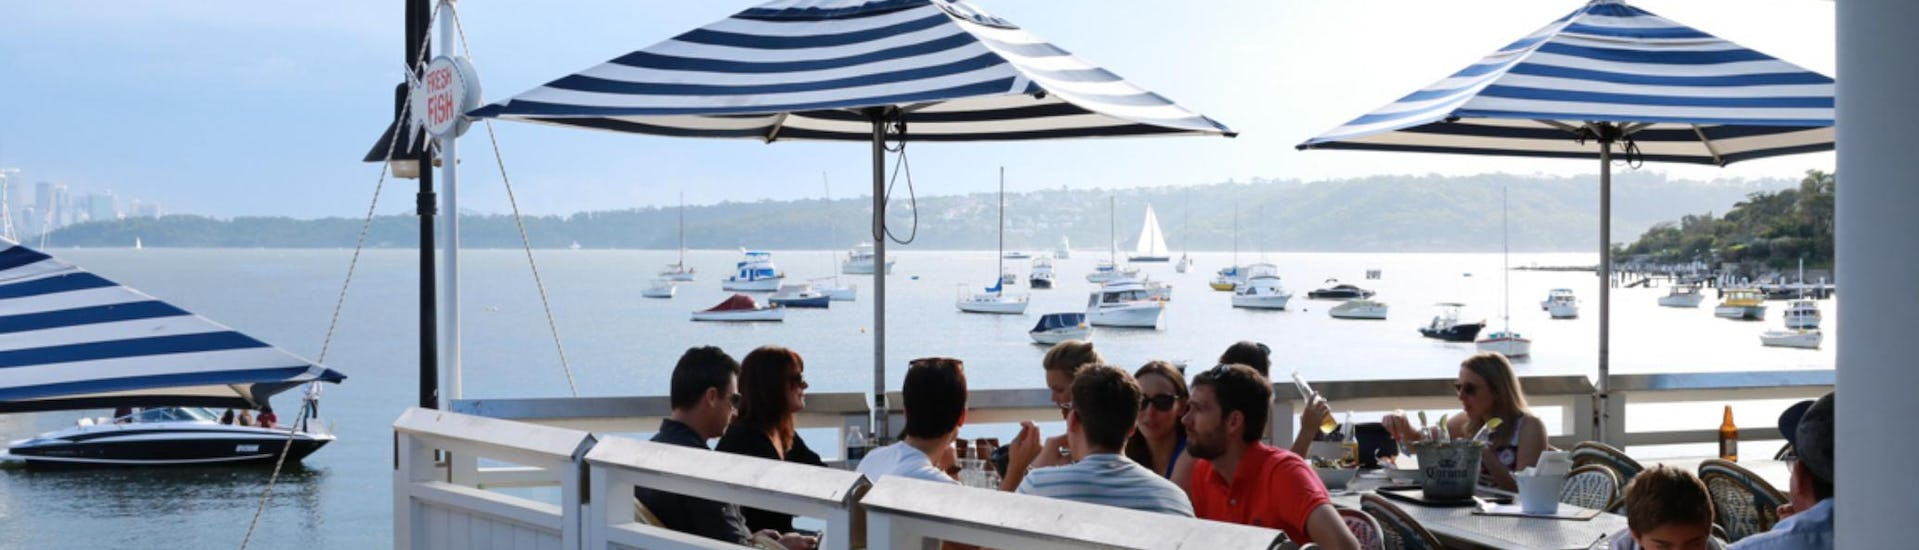 sydney-harbour-boat-tour-with-lunch-break-sydney-harbour-boat-tours